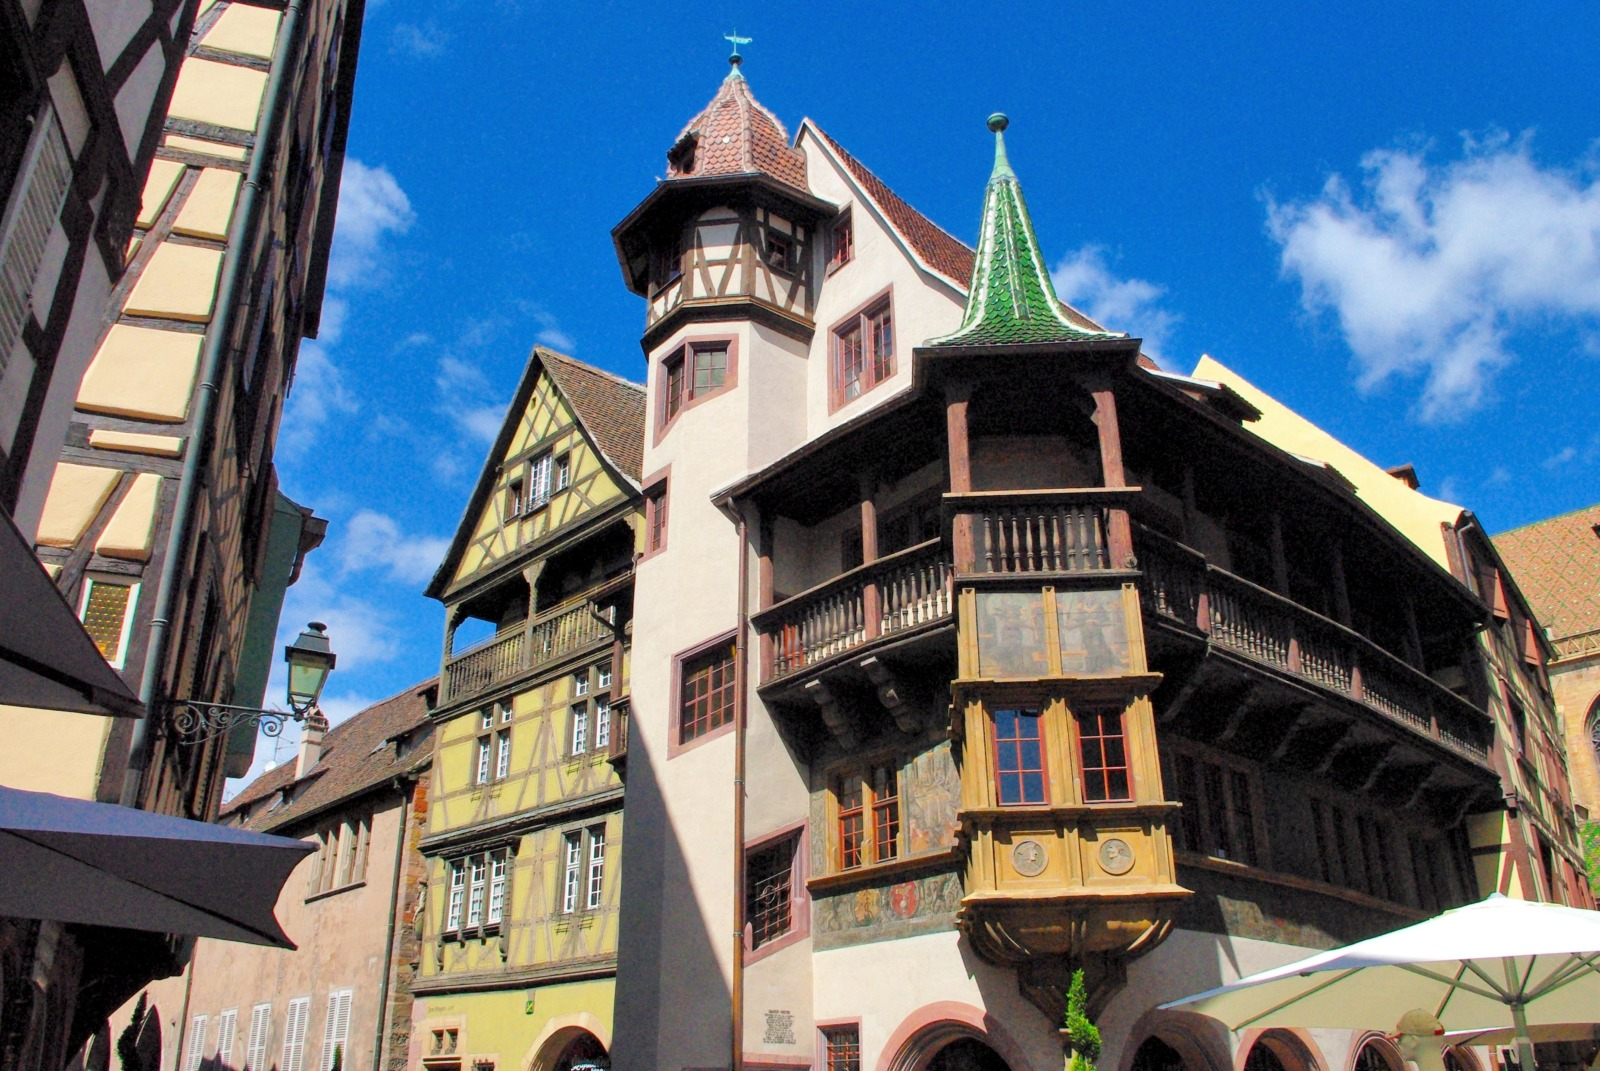 One of the most beautiful Renaissance houses in Alsace: the Pfister House © French Moments